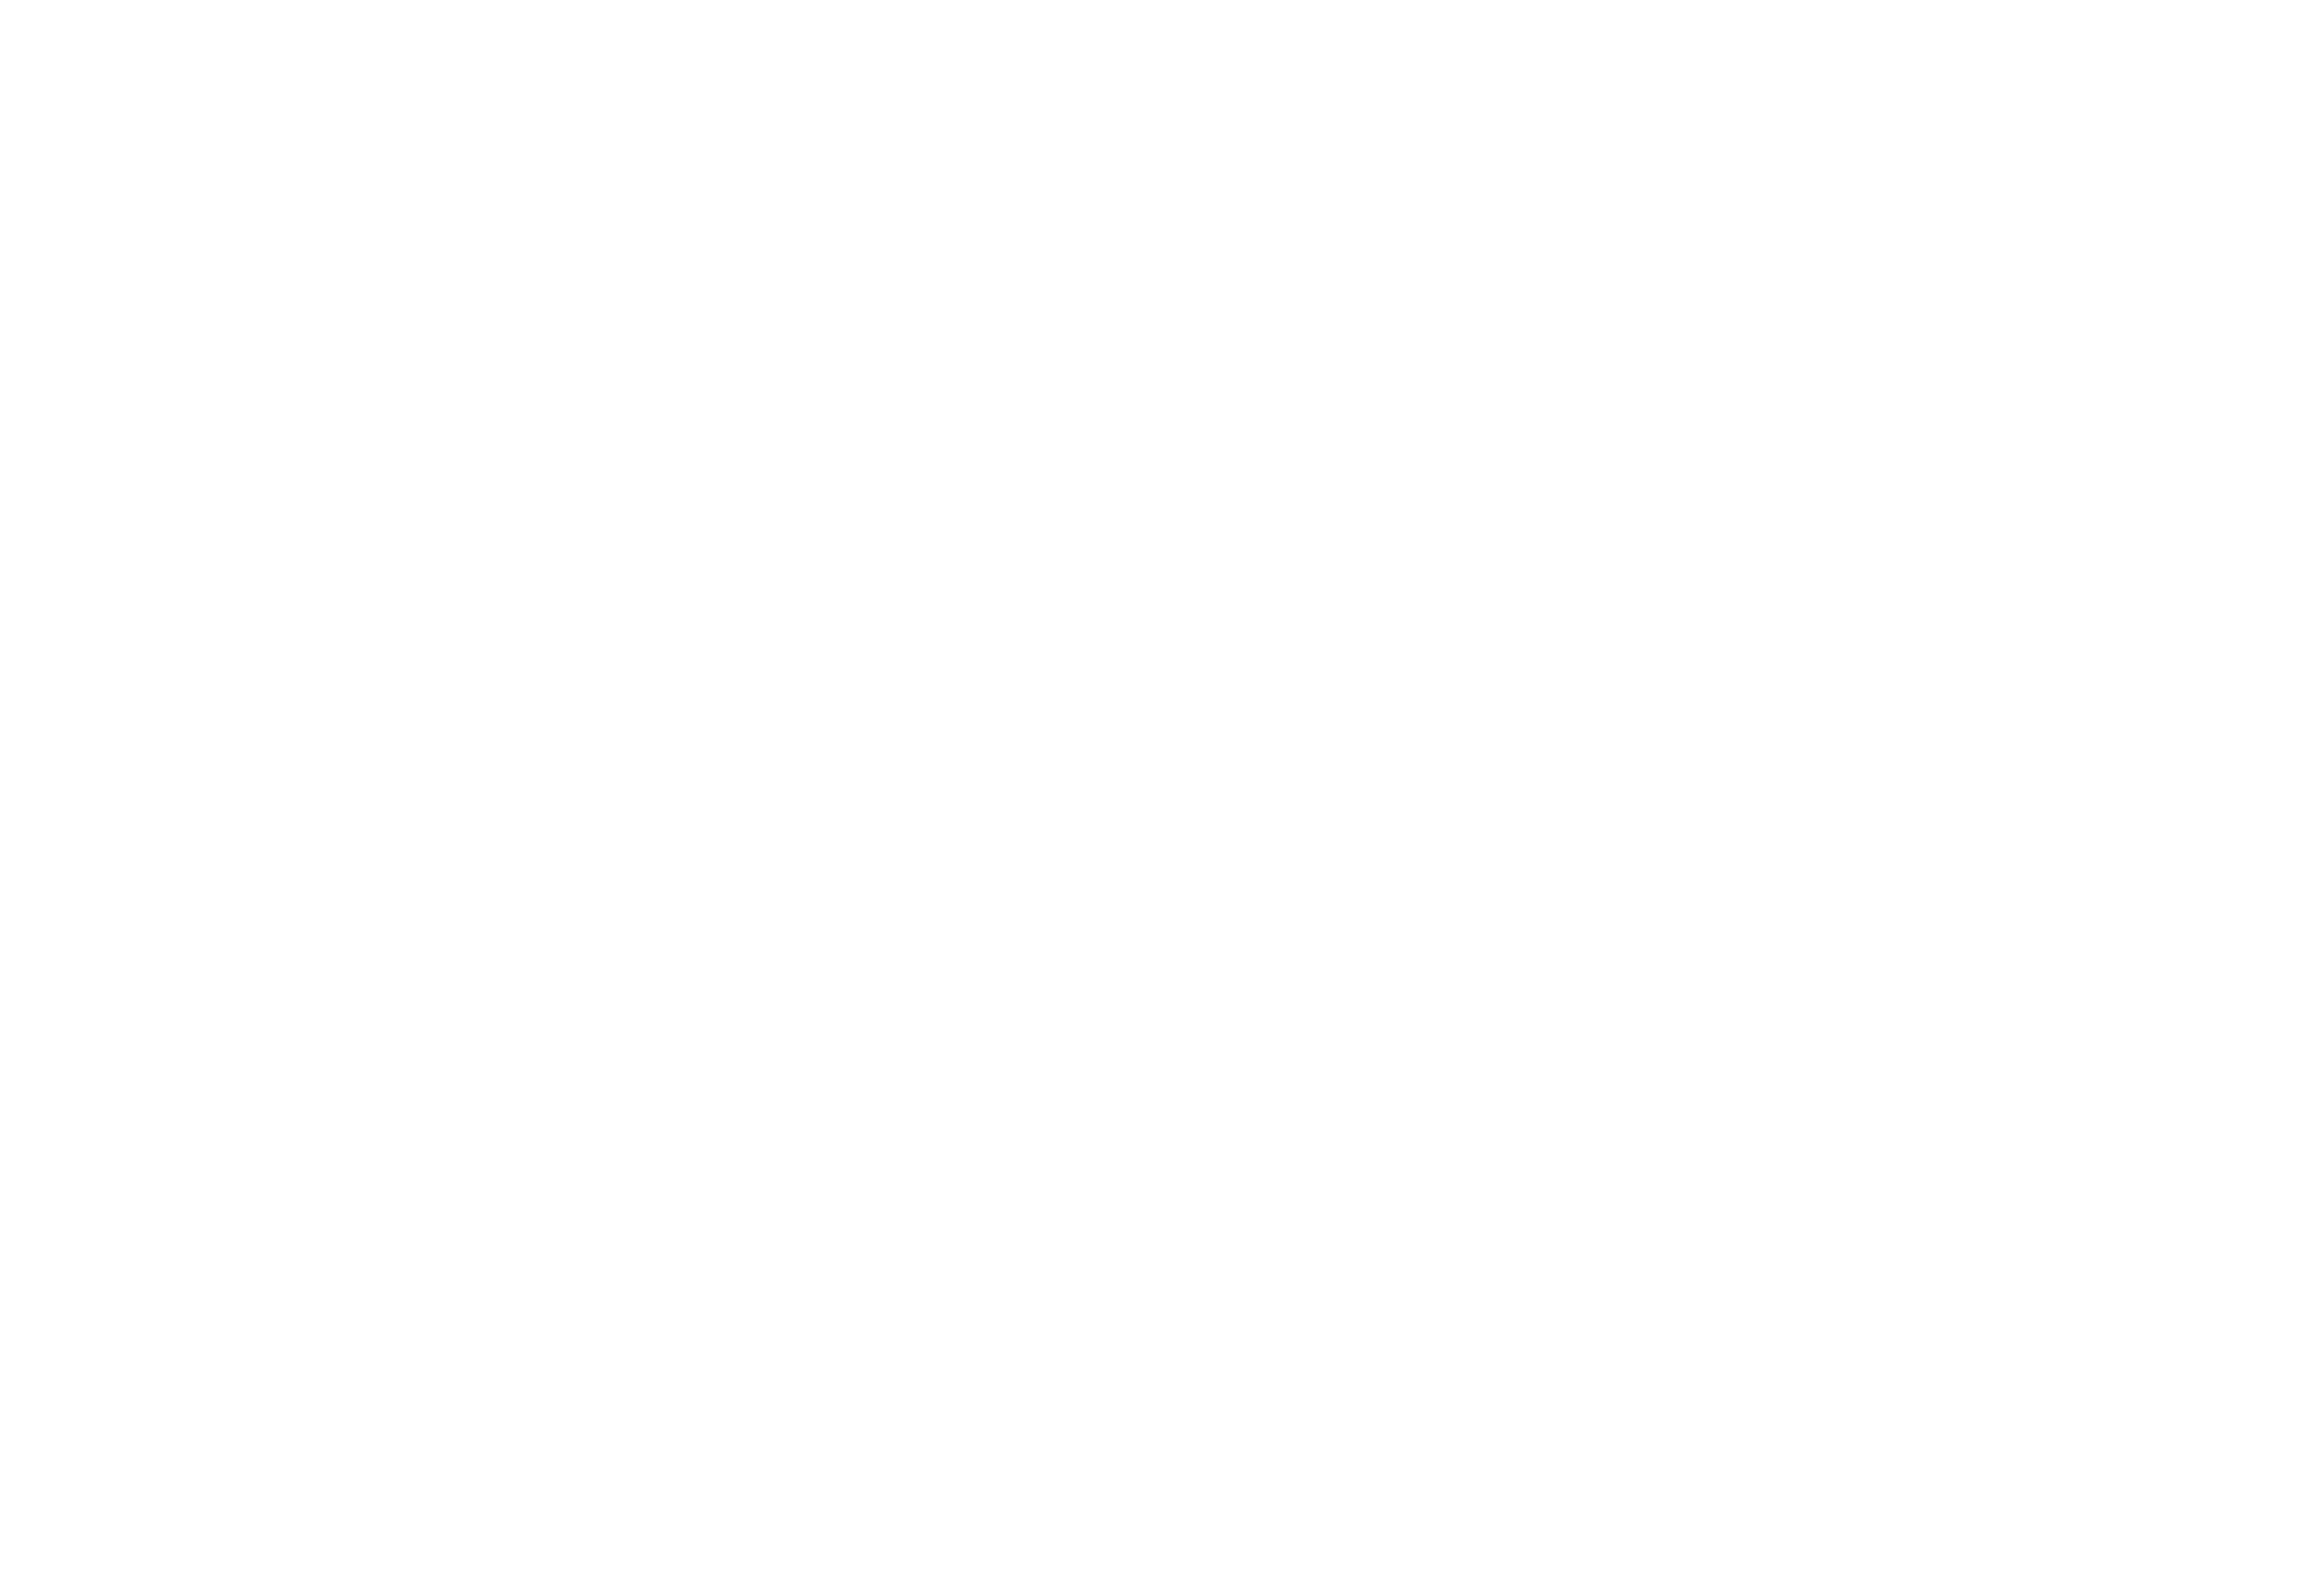 Chugach Consolidated Solutions